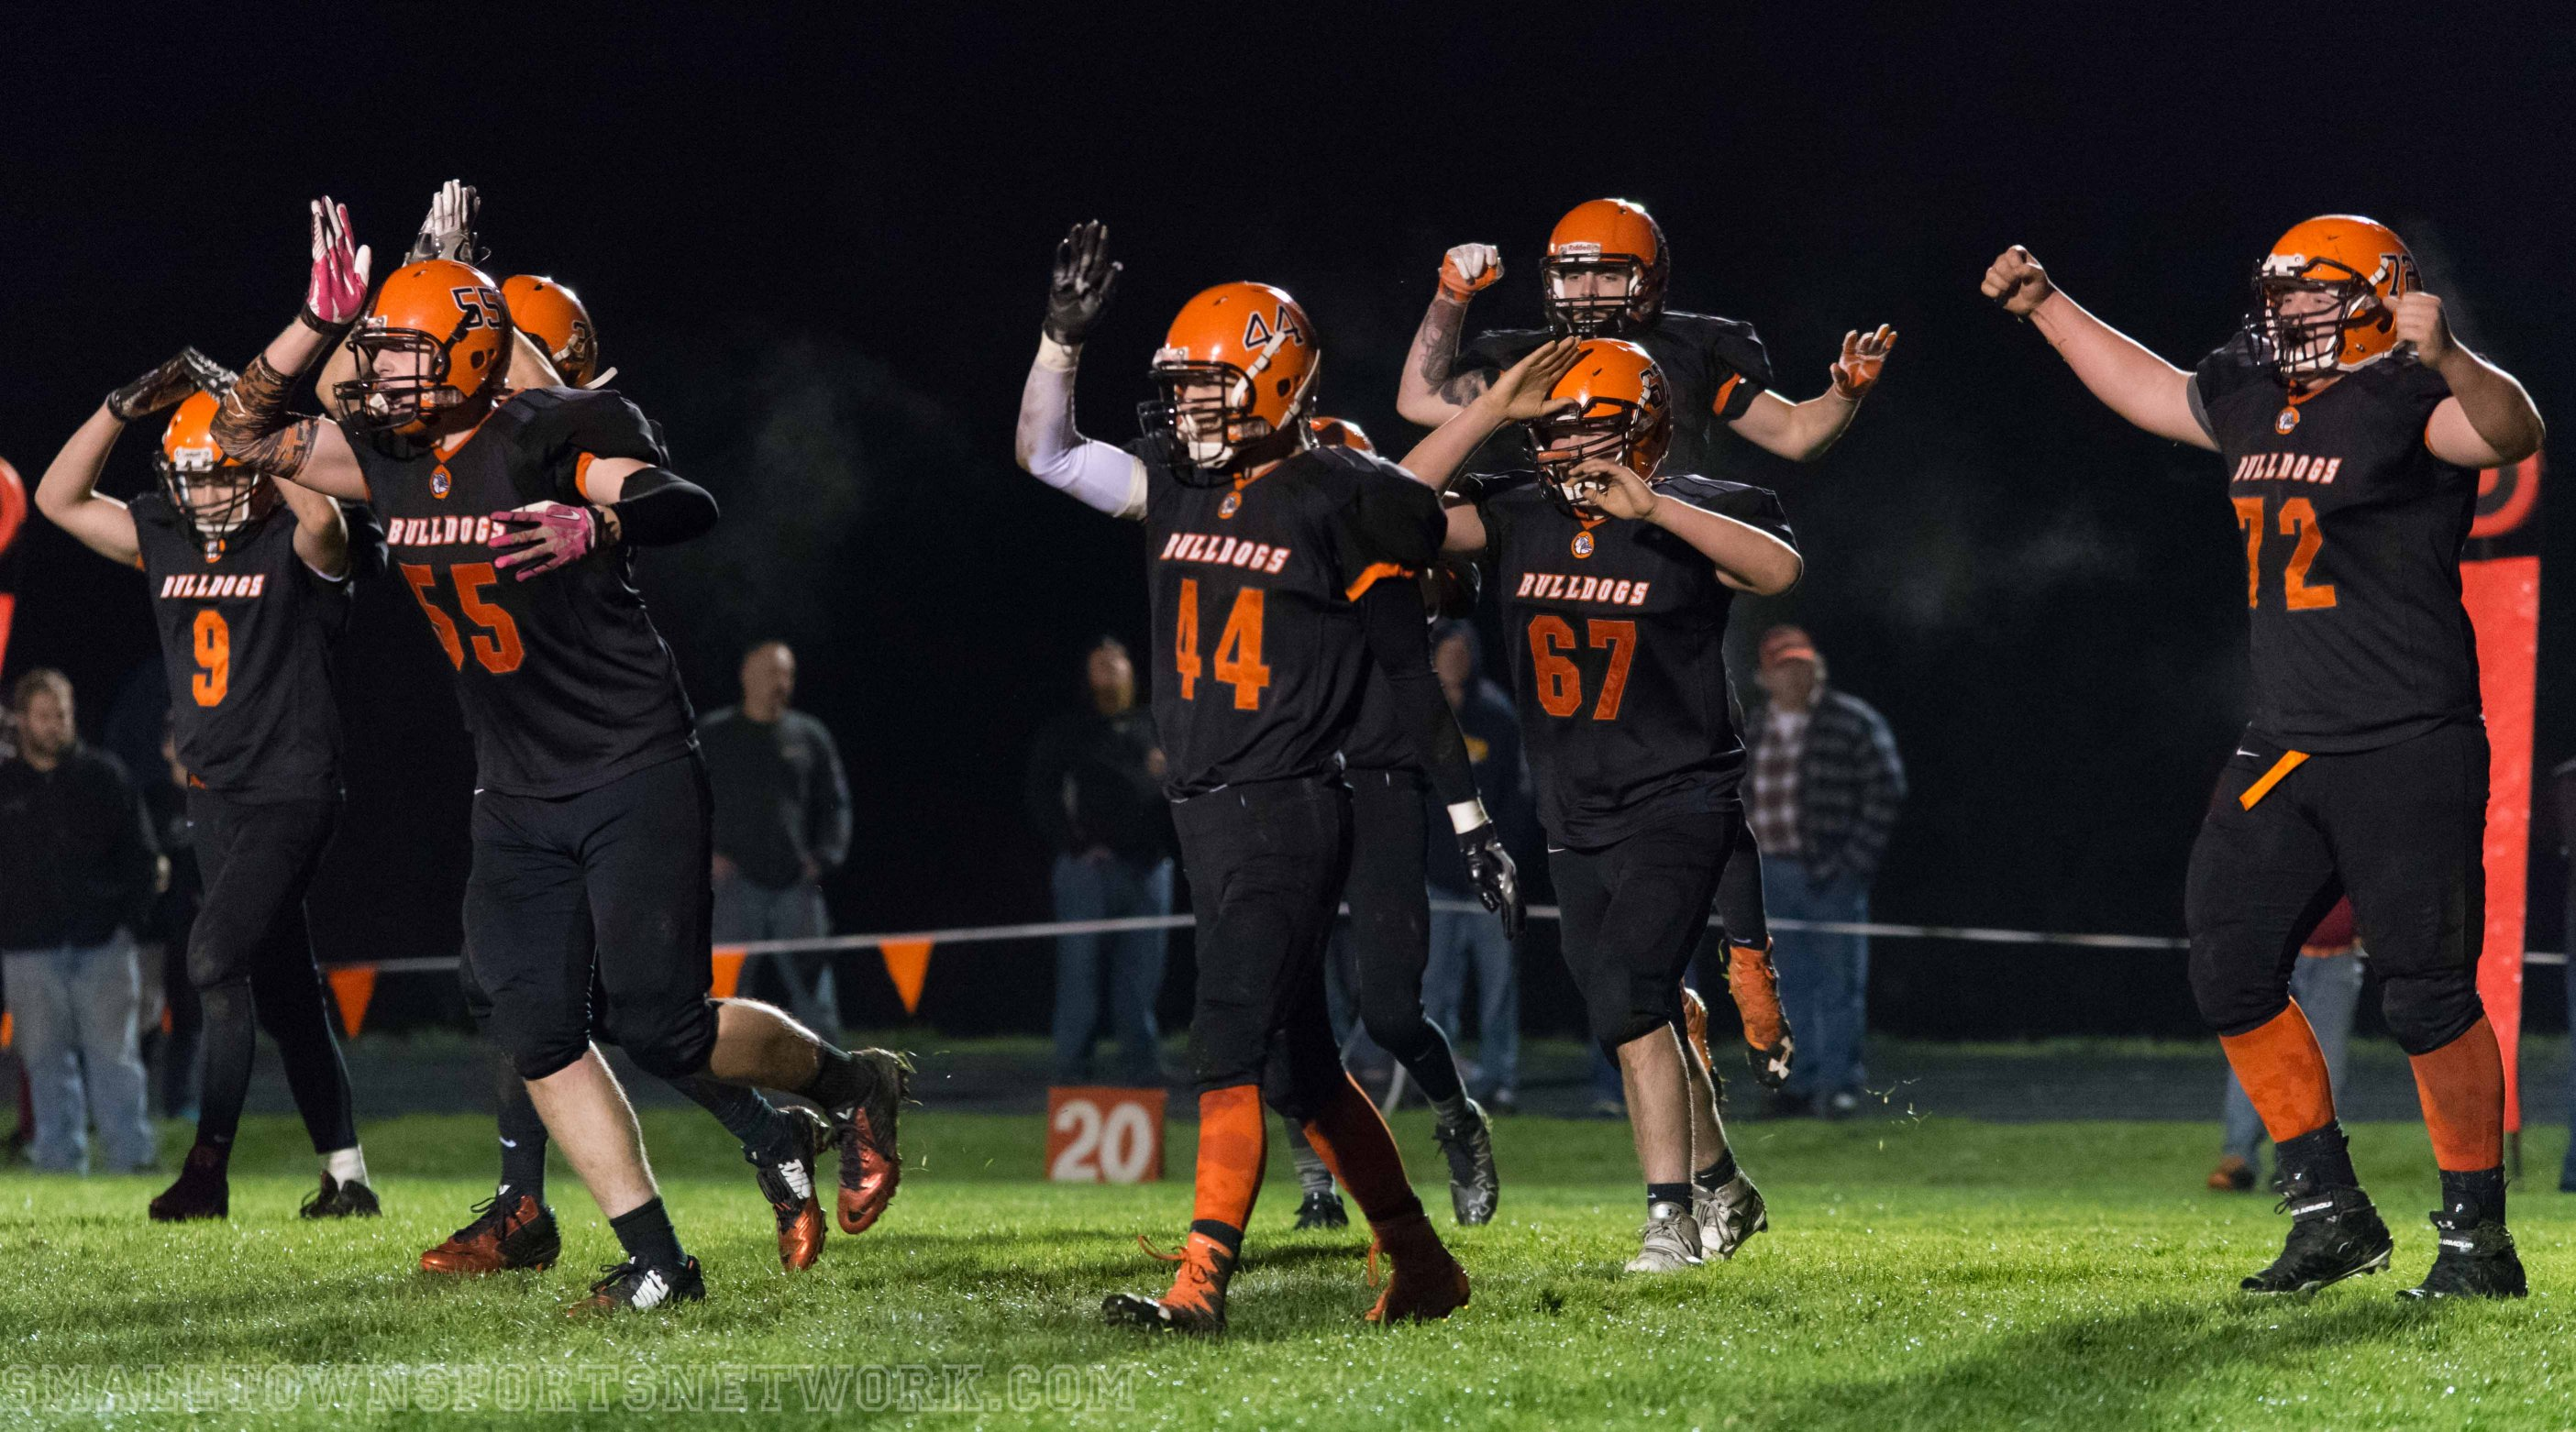 Willamina Ends Regular Season With Win Over Sheridan